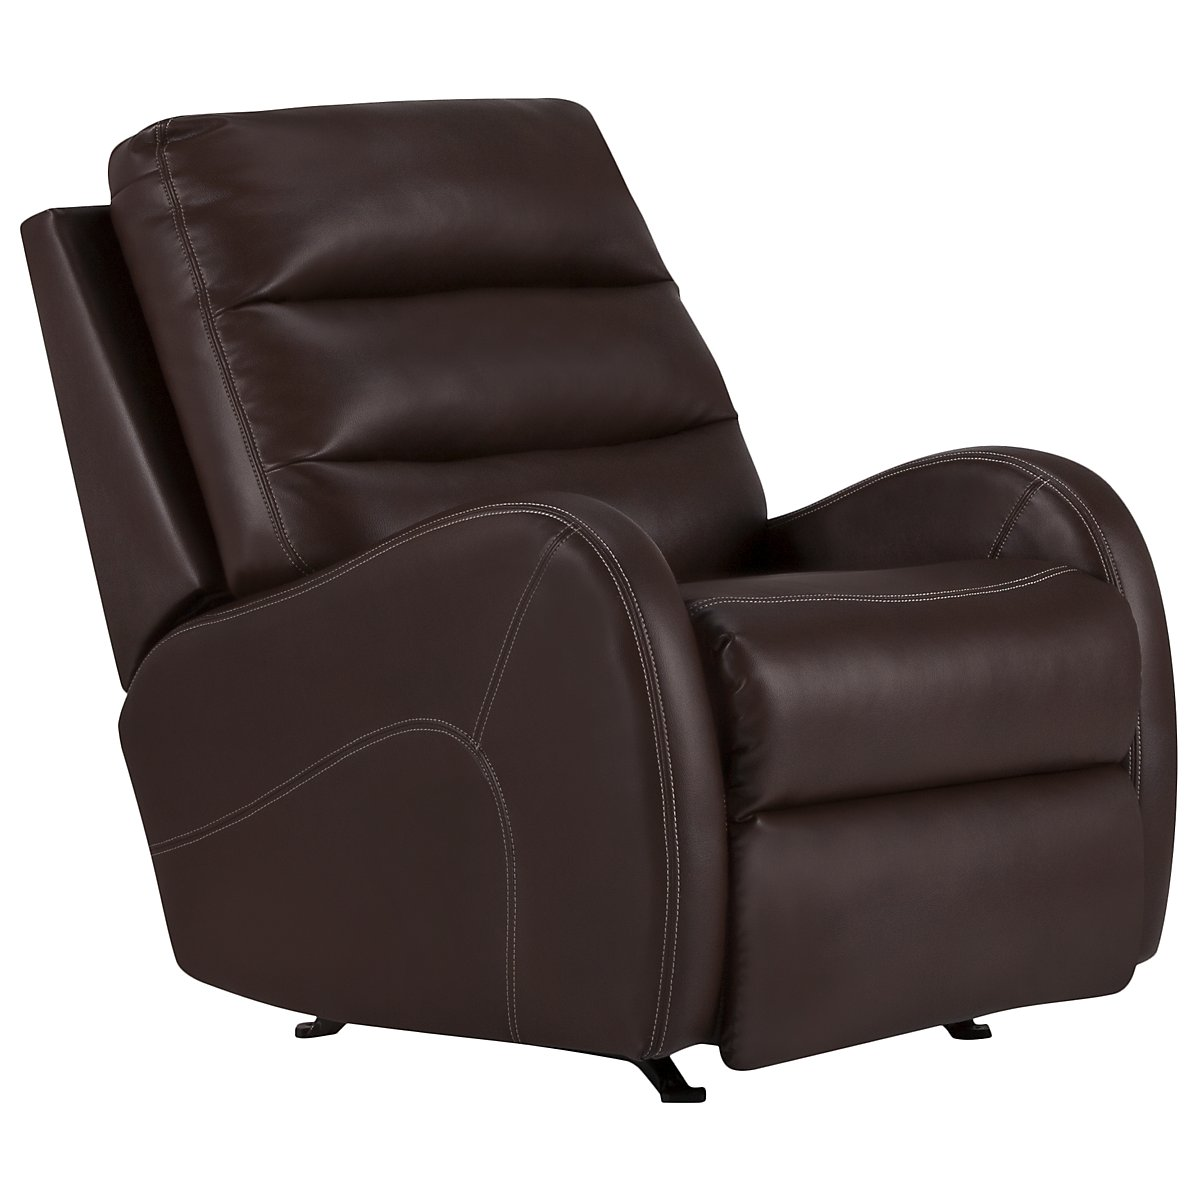 Carver Dk Brown Microfiber Power Rocker Recliner